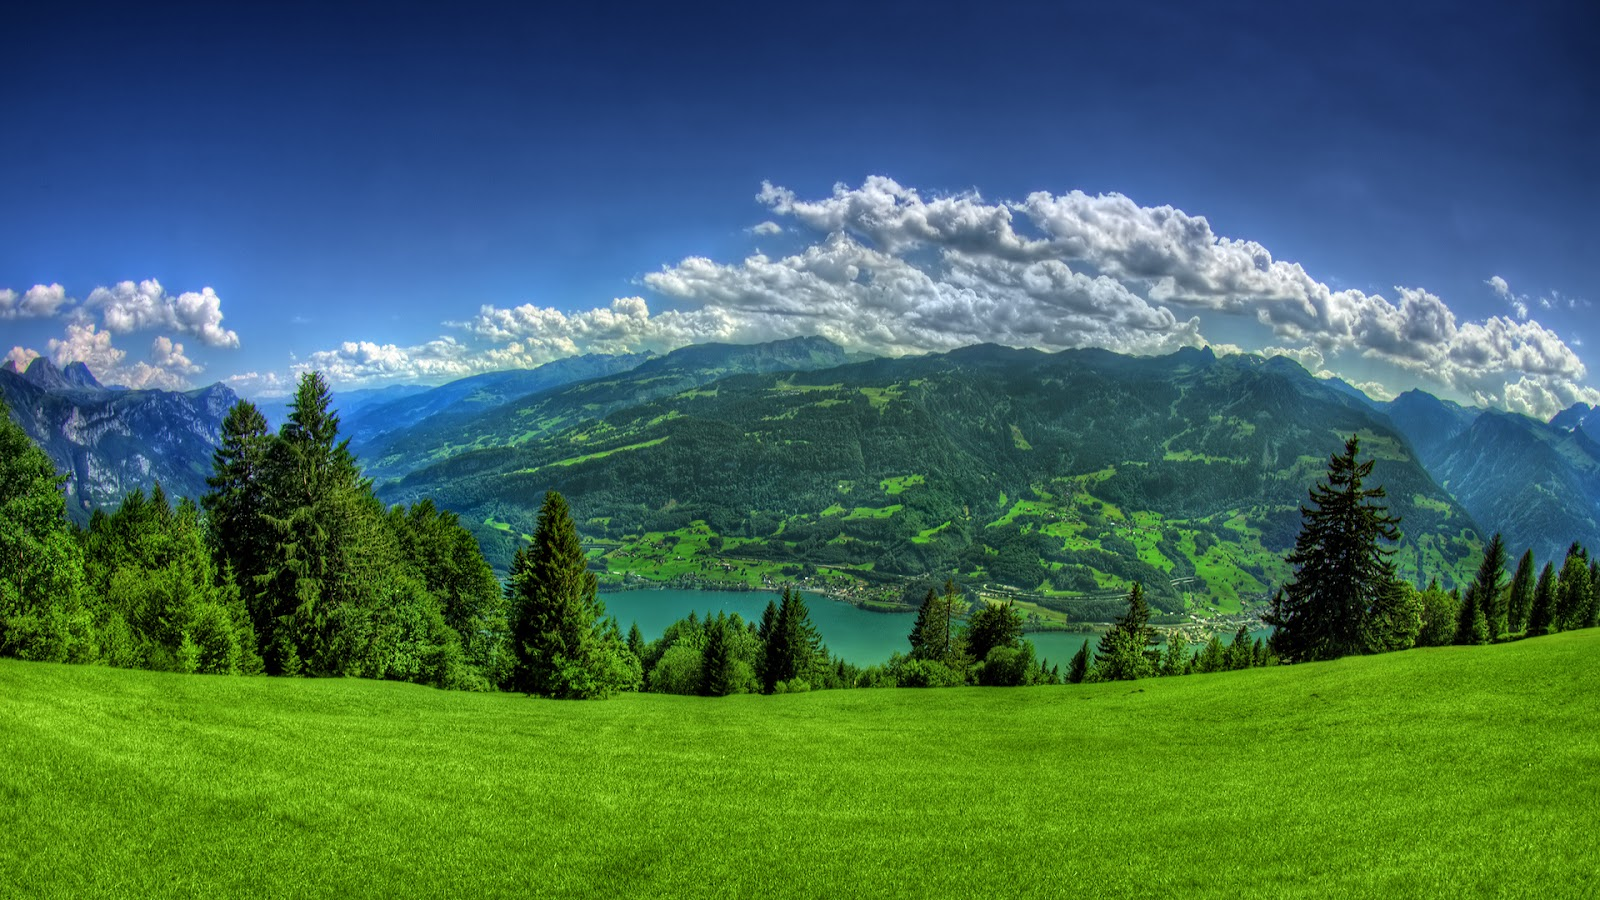 http://4.bp.blogspot.com/-yOp_zIMrnH4/UEhh-vQx6tI/AAAAAAAABBw/7XxWot2cAVE/s1600/lush-green-grass-mountain-full-HD-nature-background-wallpaper-for-laptop-widescreen.jpg